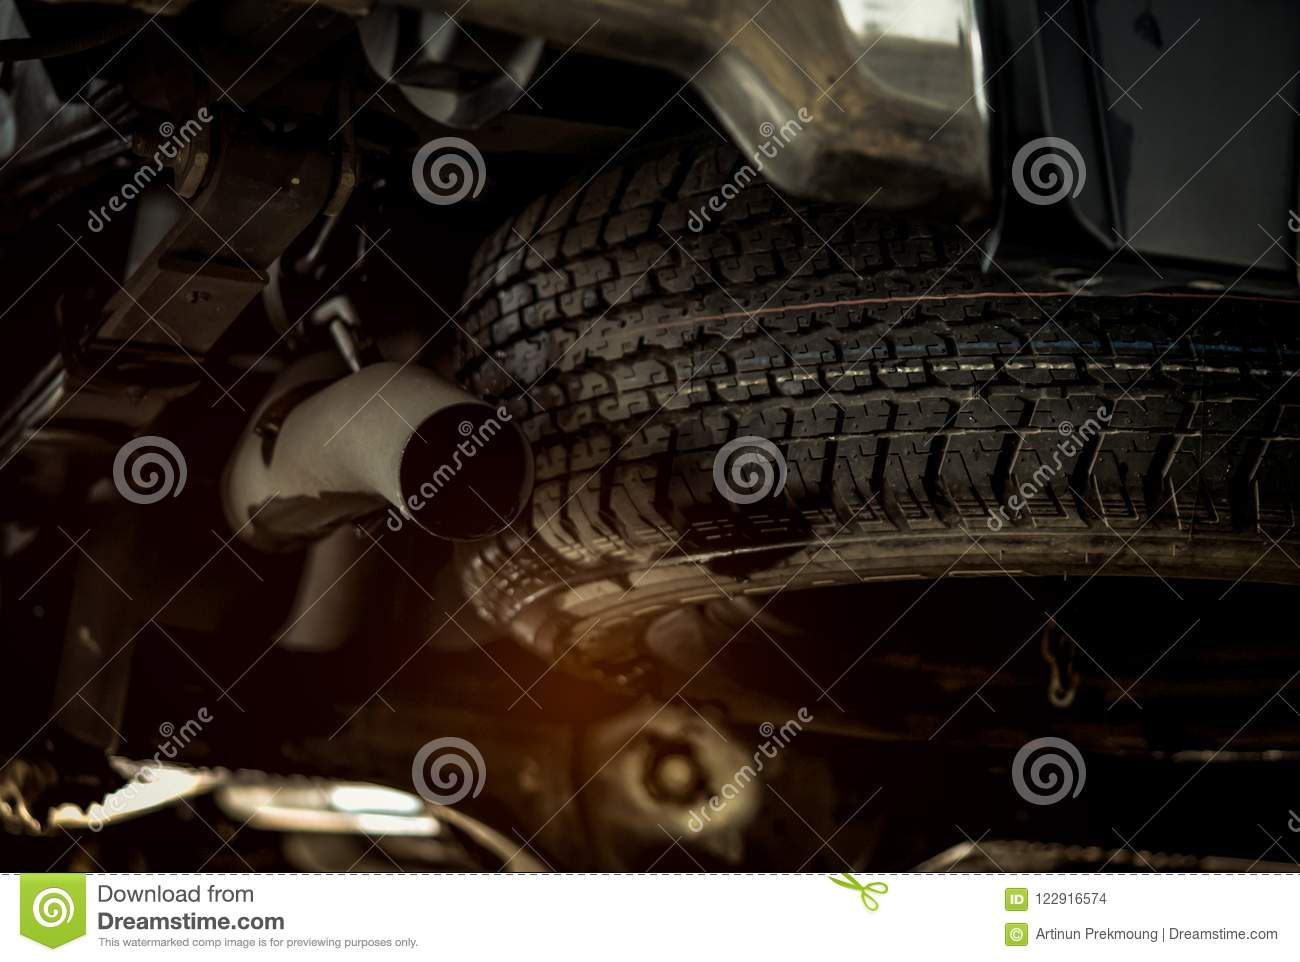 Spare tire under the car near exhaust pipe. Spare wheel. Rubber product. Car check up before travel concept